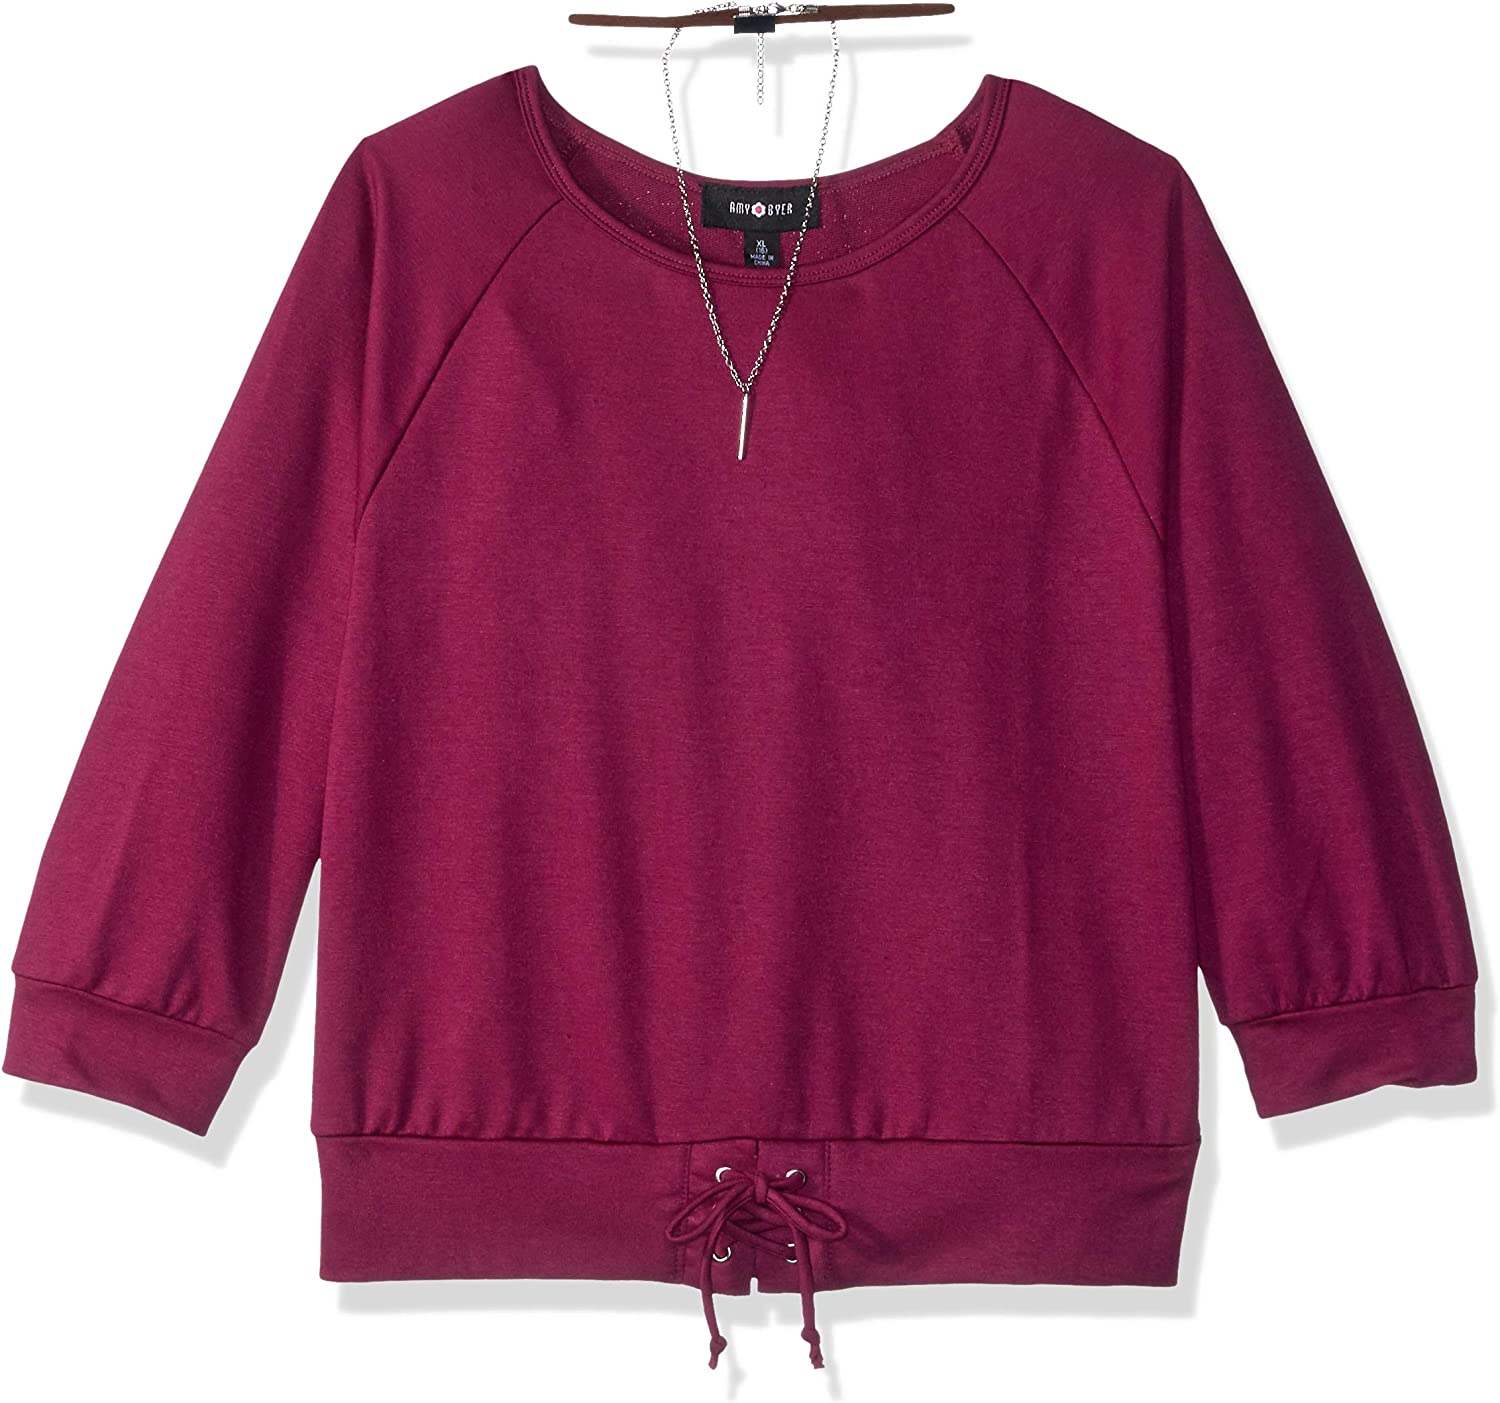 Amy Byer Special Free shipping on posting reviews sale item Girls' Big Raglan Banded Laced-up Top with Bottom